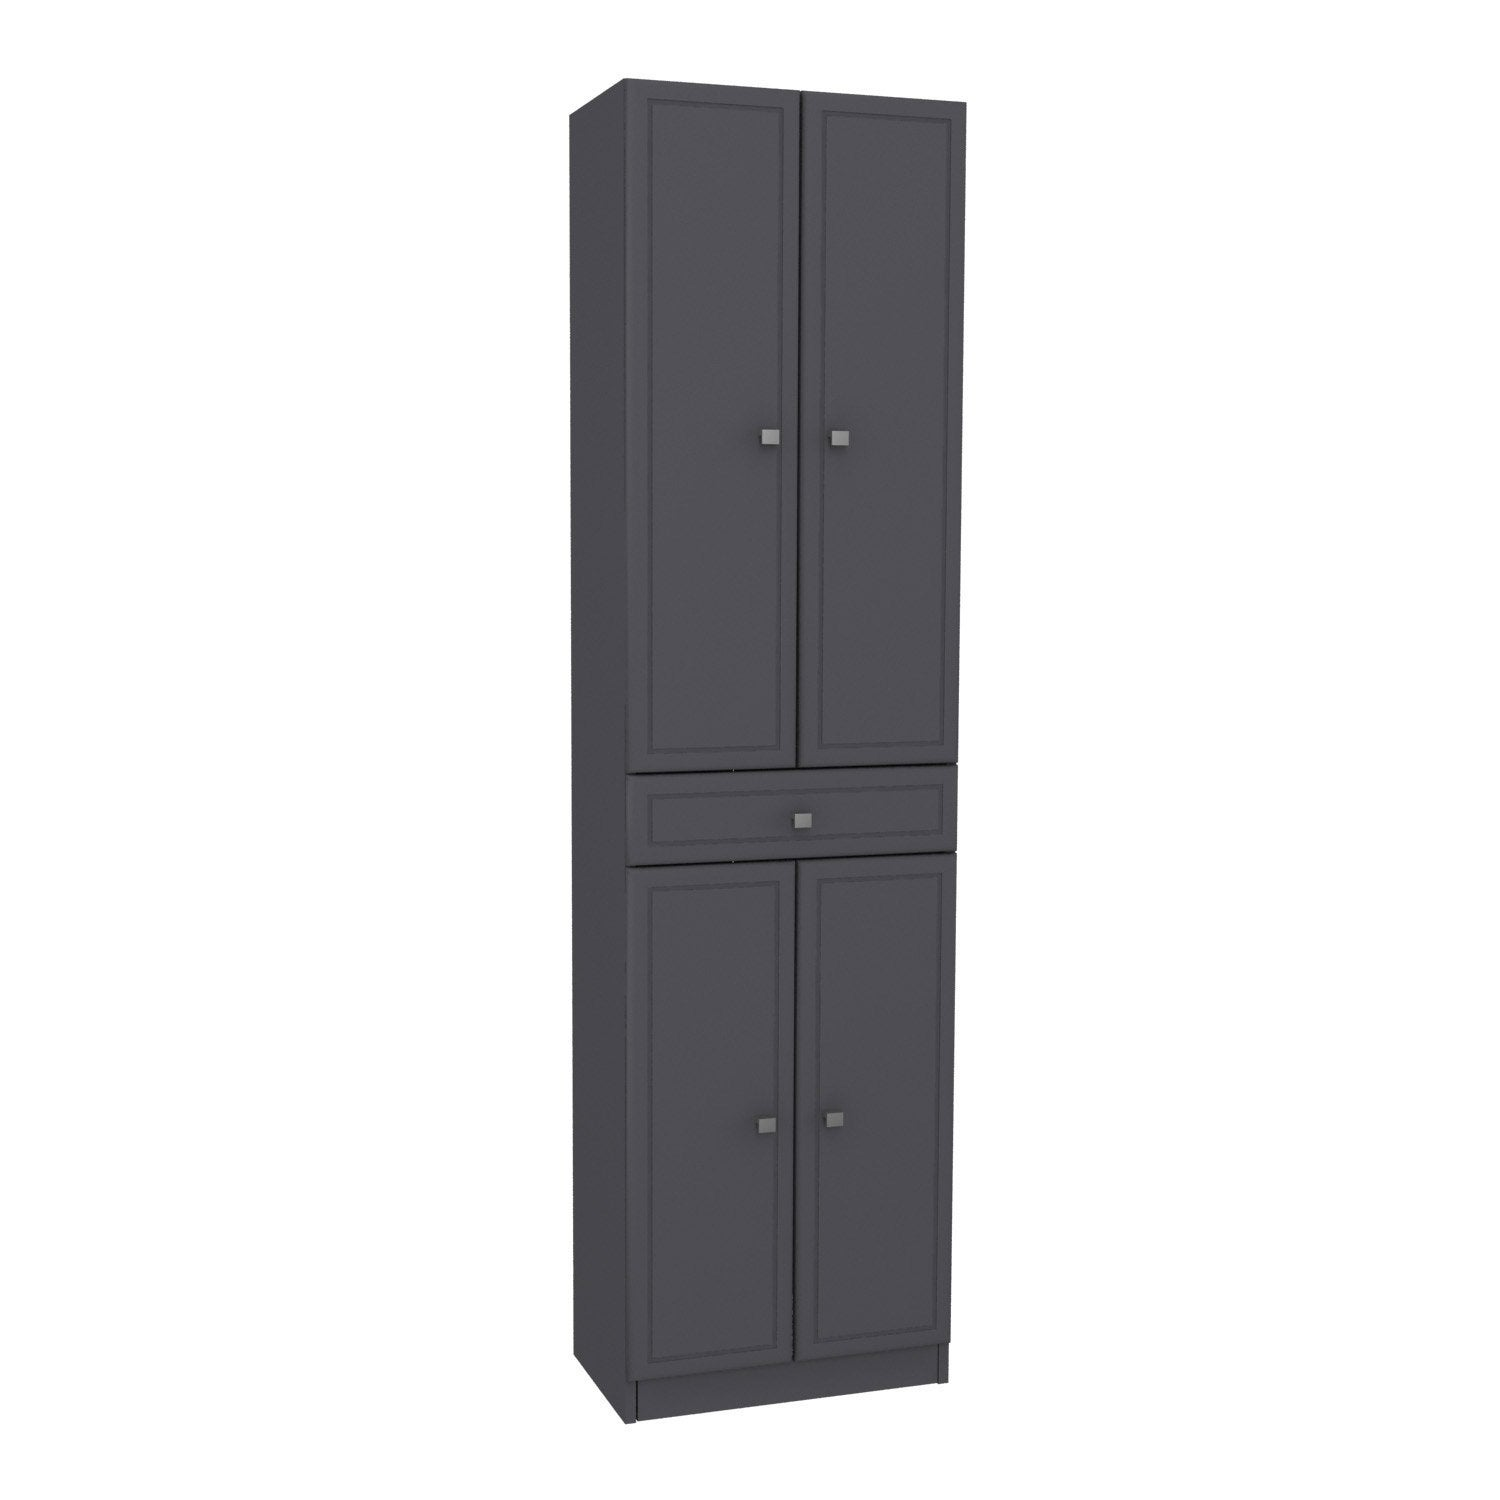 colonne x x cm gris galice leroy merlin. Black Bedroom Furniture Sets. Home Design Ideas